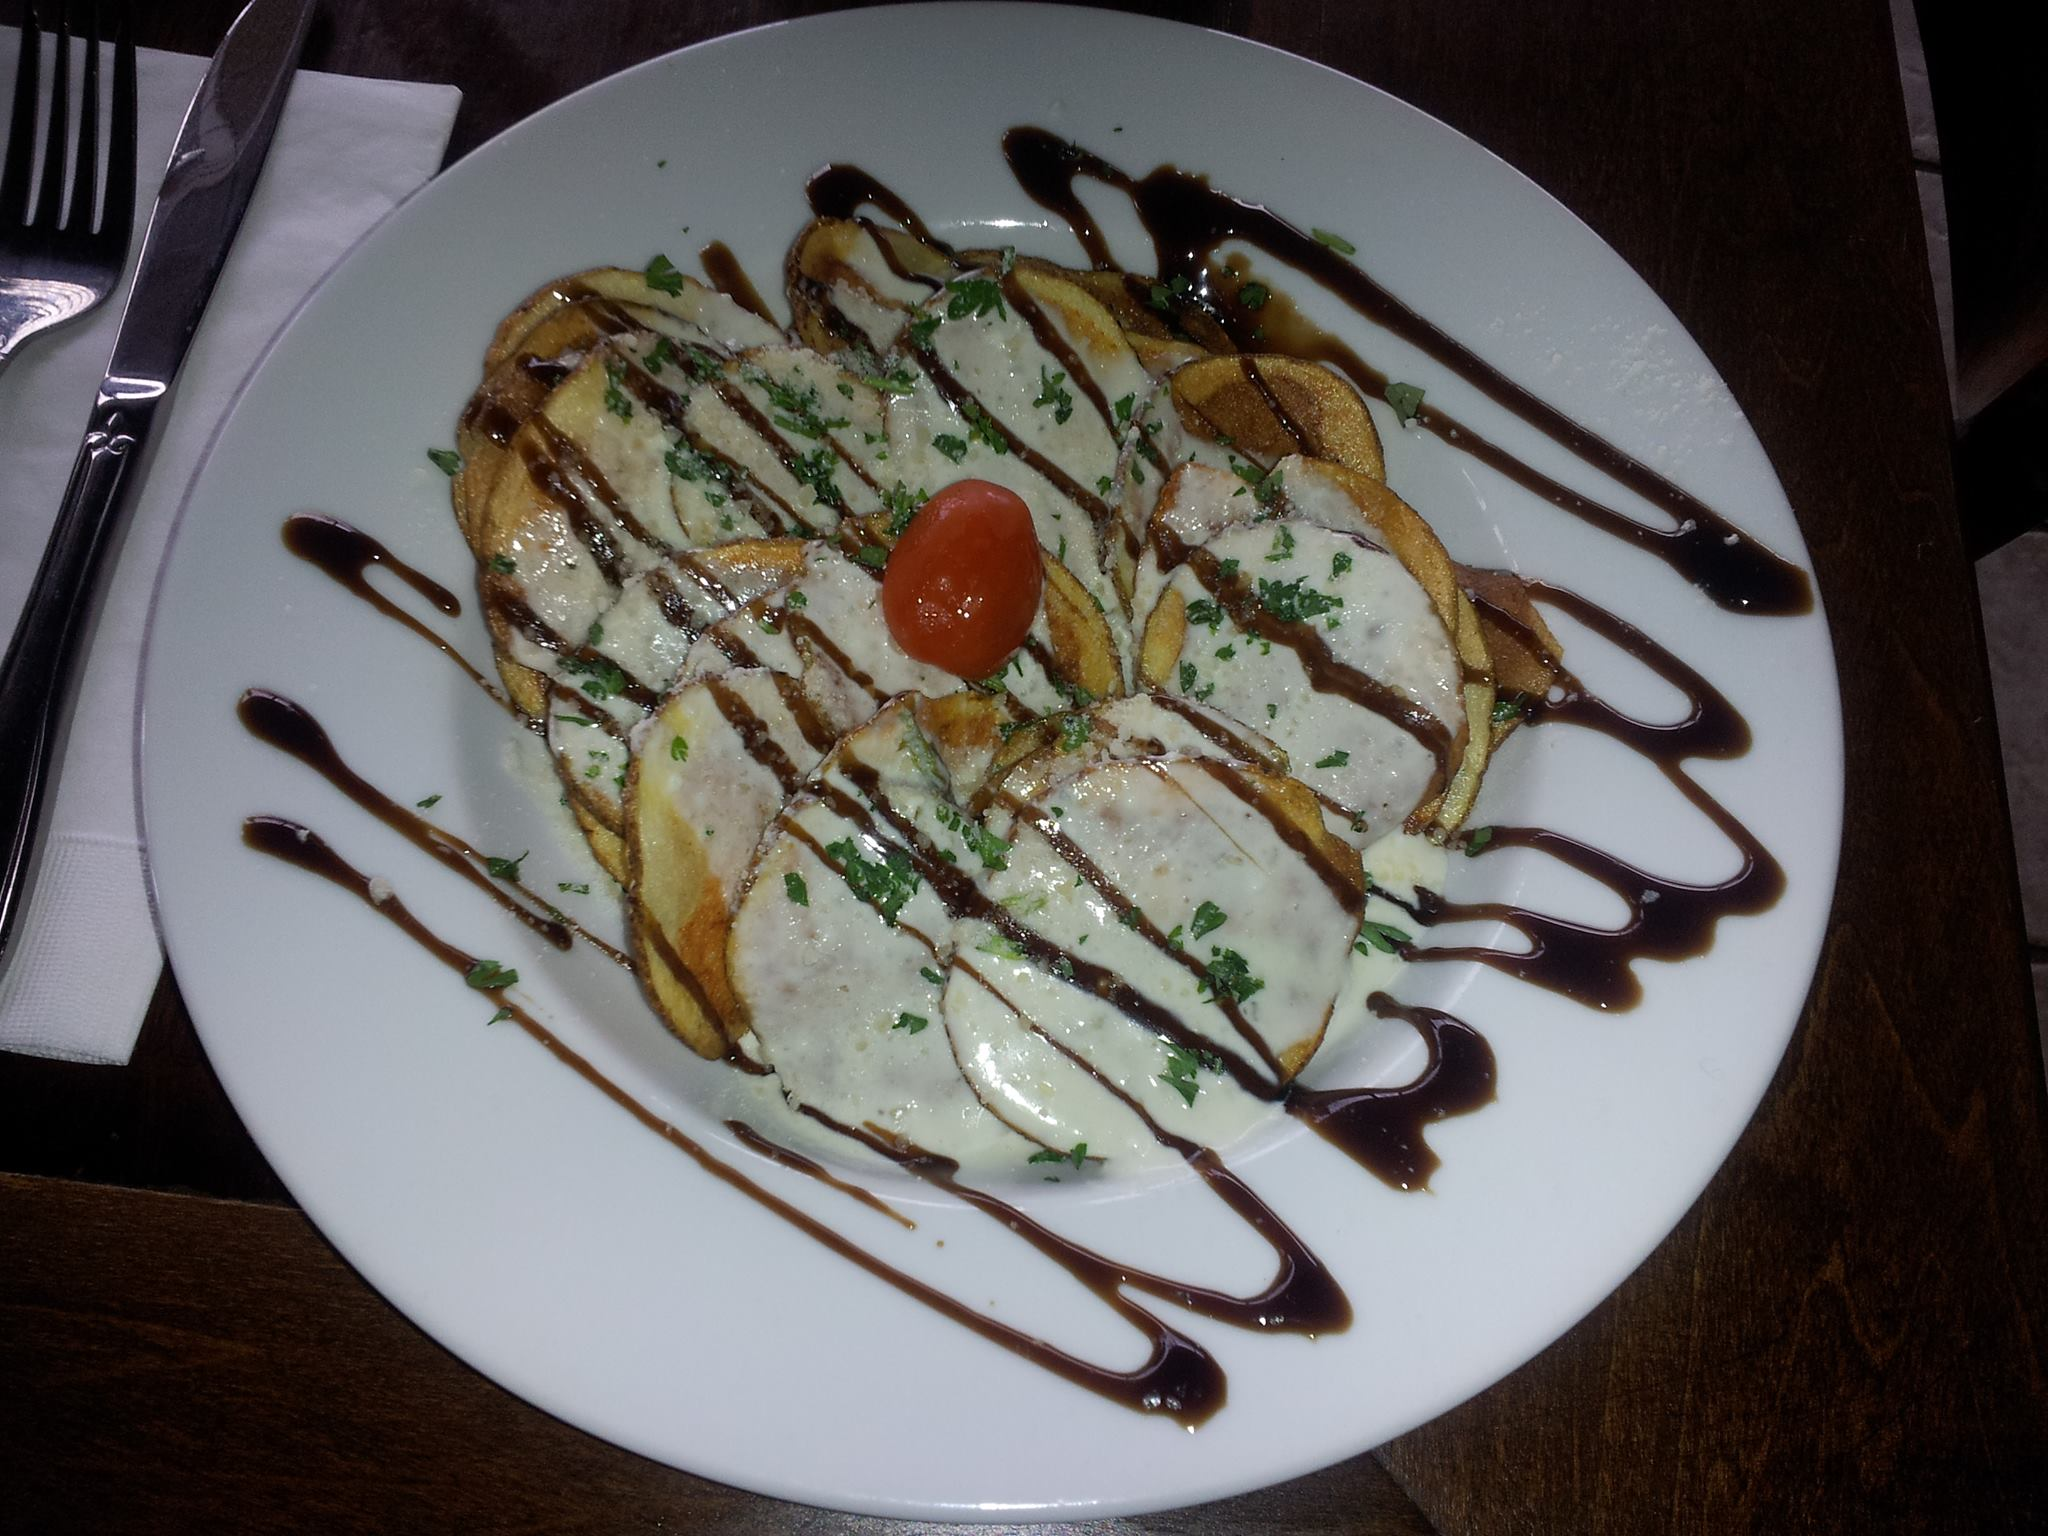 Potato slices with dressing and balsamic glaze.